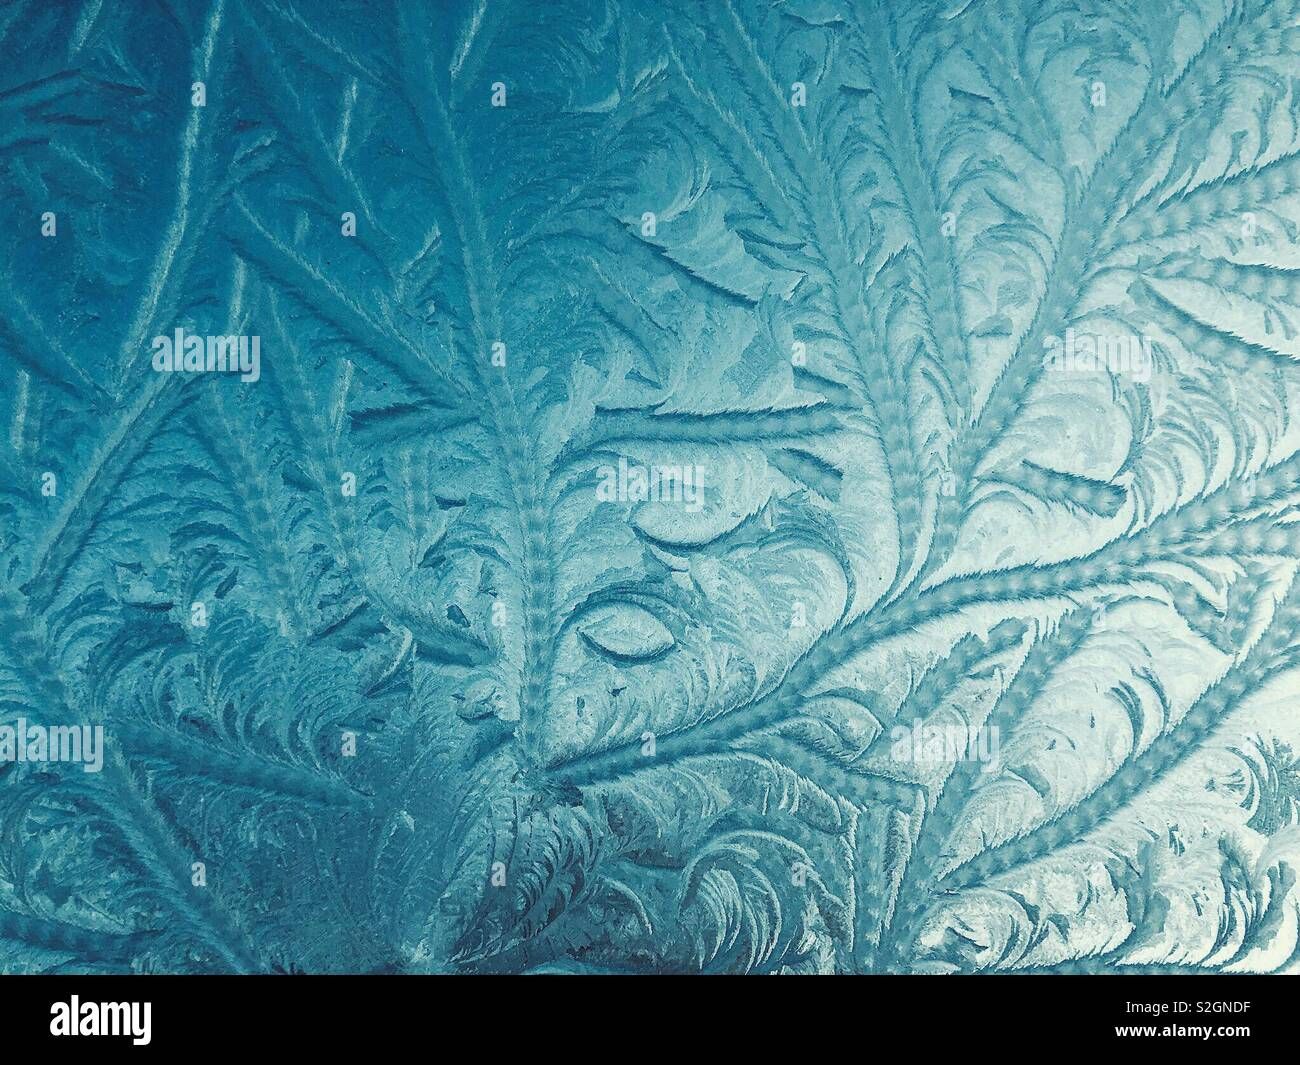 Frozen patterns painted by Jack Frost - Stock Image